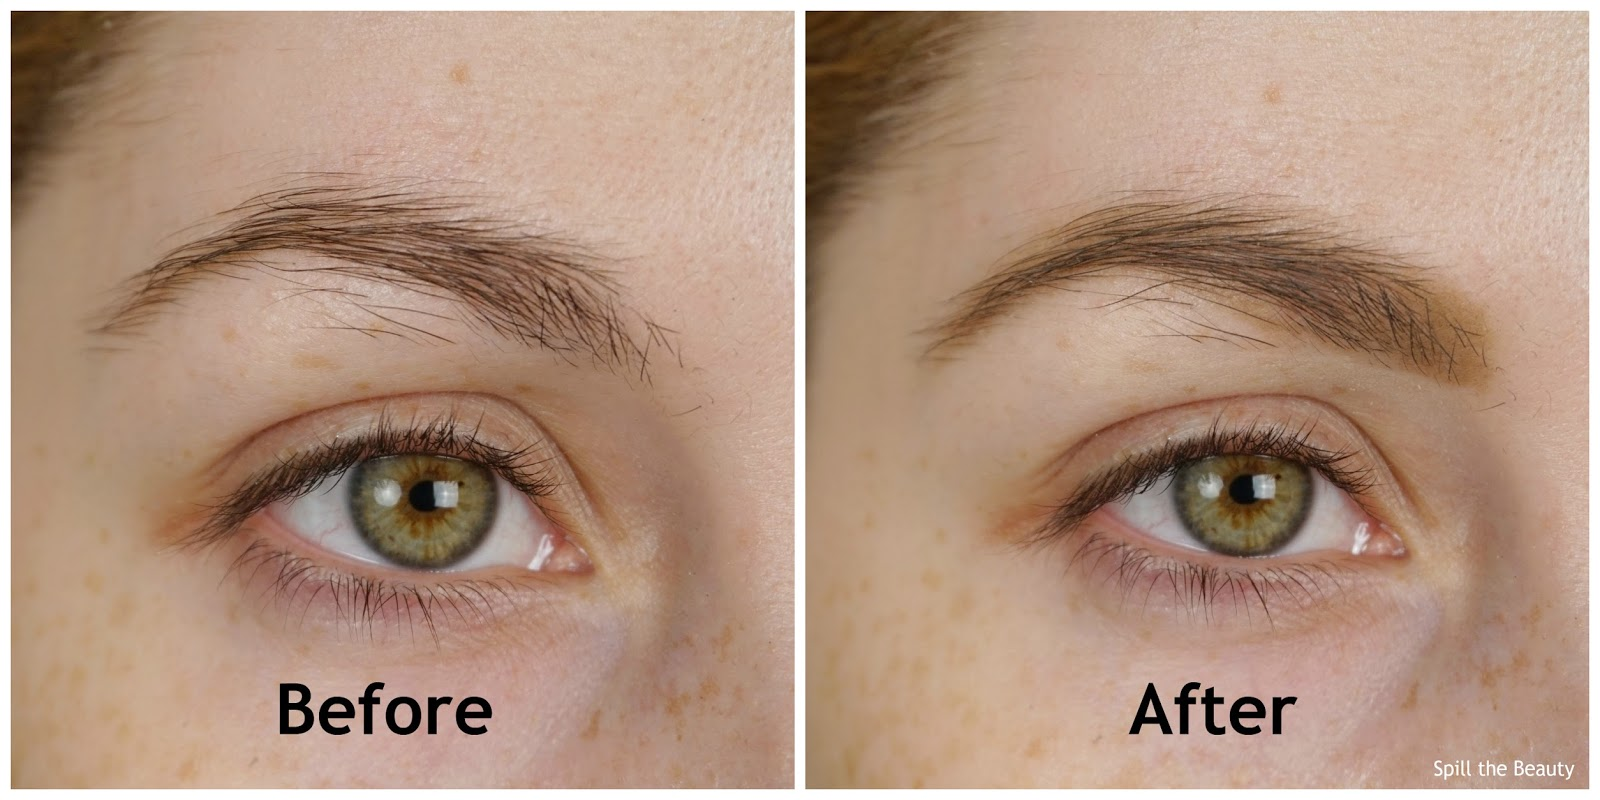 MAKE UP FOR EVER Pro Sculpting Brow Palette Harmony 1 review swatches 3 before and after